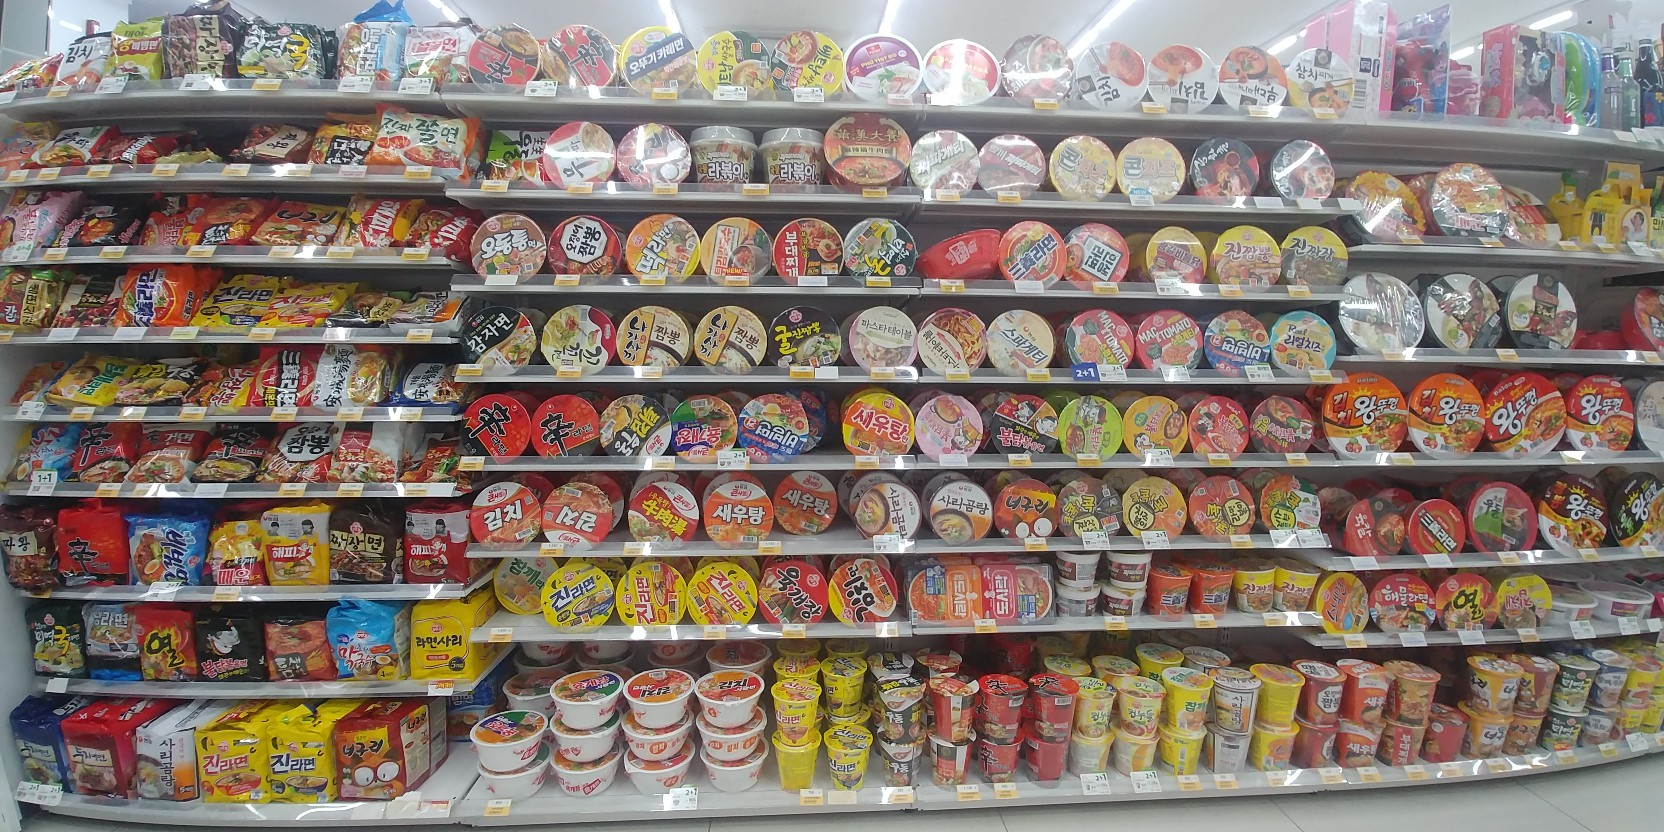 What is your choice cup noodle of kore